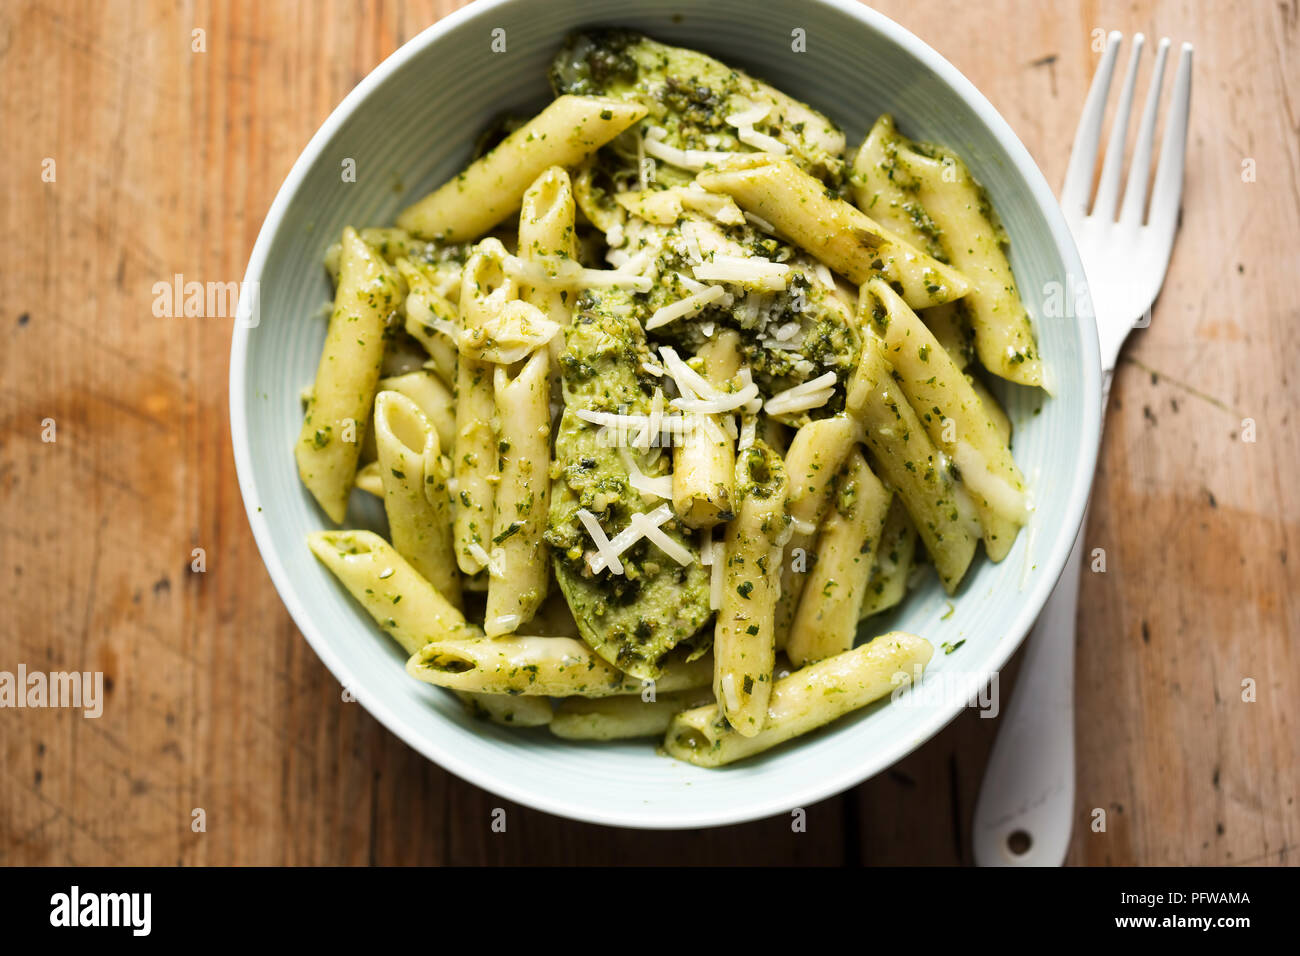 Green pesto chicken pasta with parmesan - Stock Image